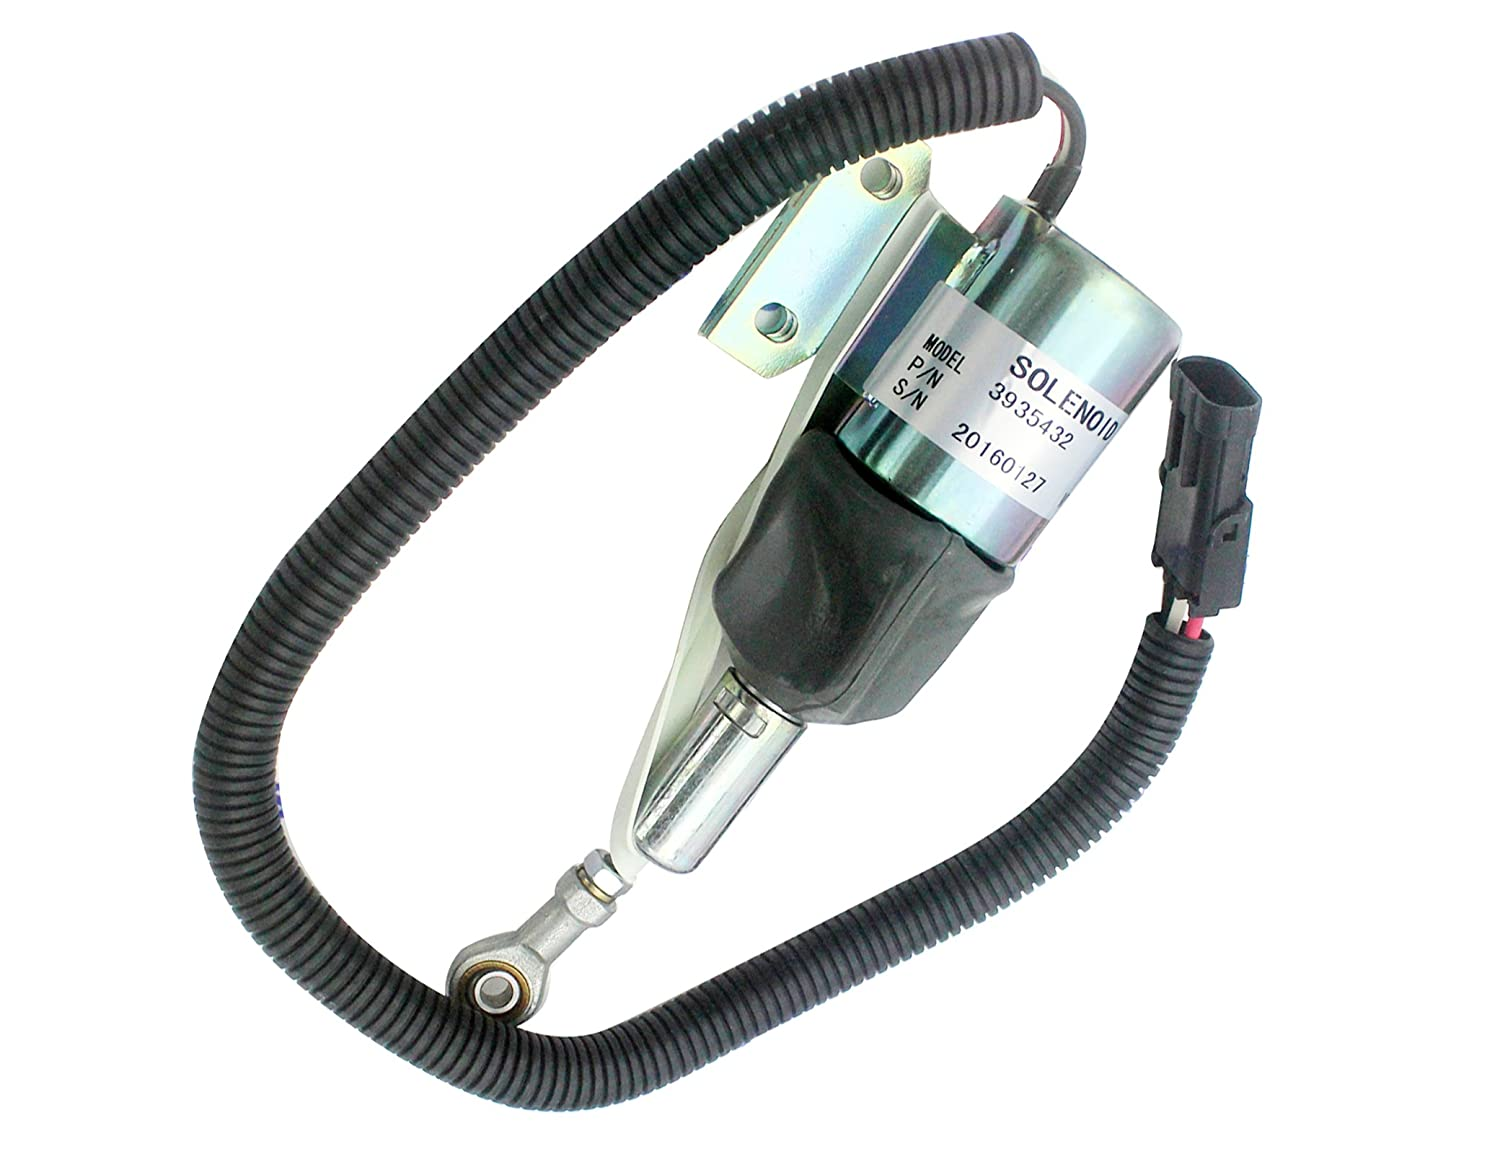 SINOCMP Stop Solenoid for Cummins Excavator 6BT 5.9 Engine 3 Month Warranty 3935432 3935430 SA-4755-24 Fuel Shutdown Solenoid 24V